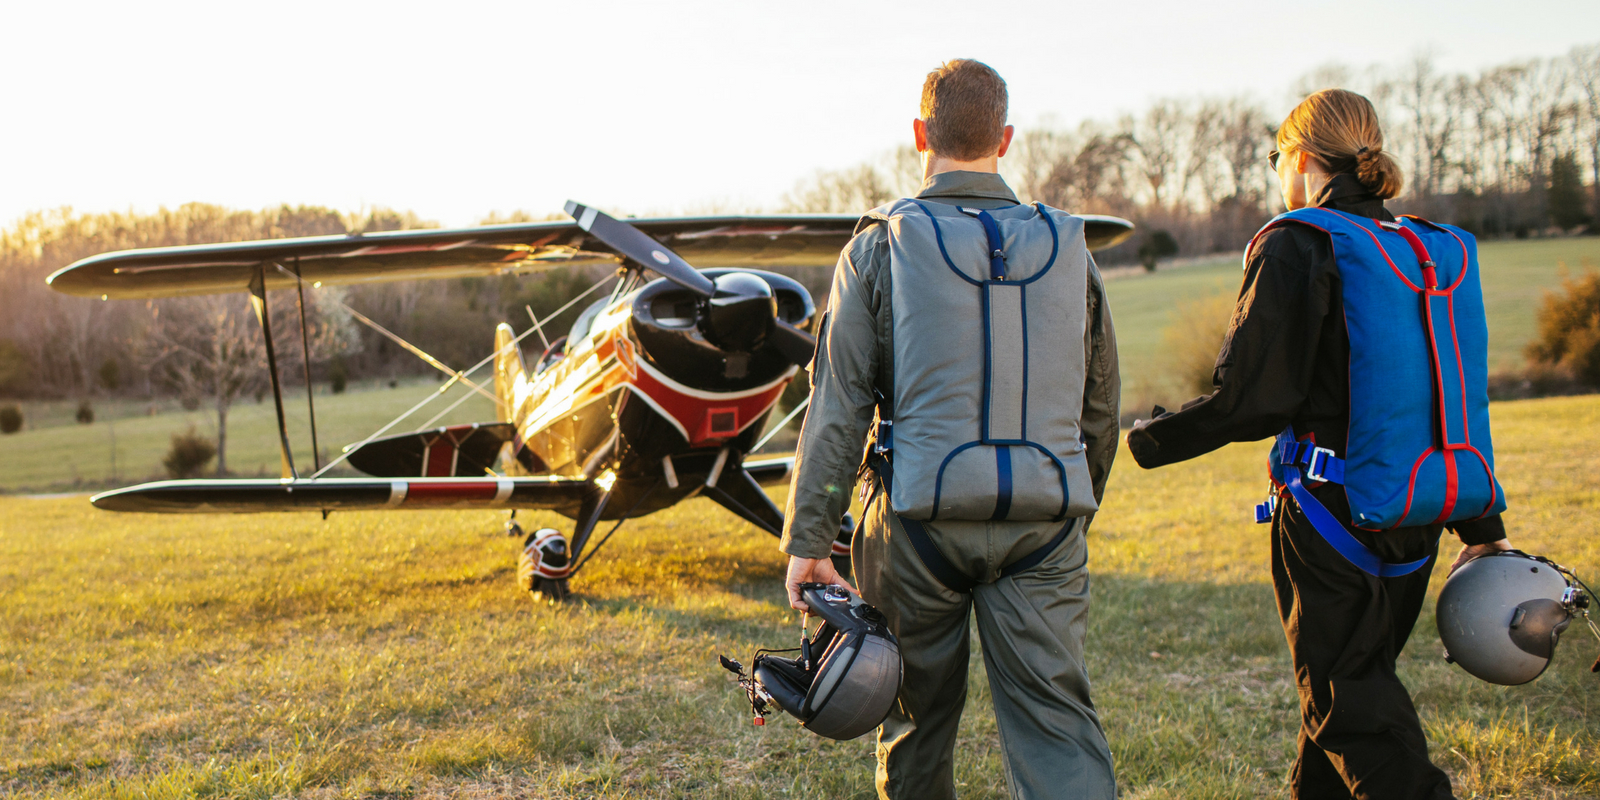 two pilots walk into the sunset wearing blue and gray Butler back parachutes